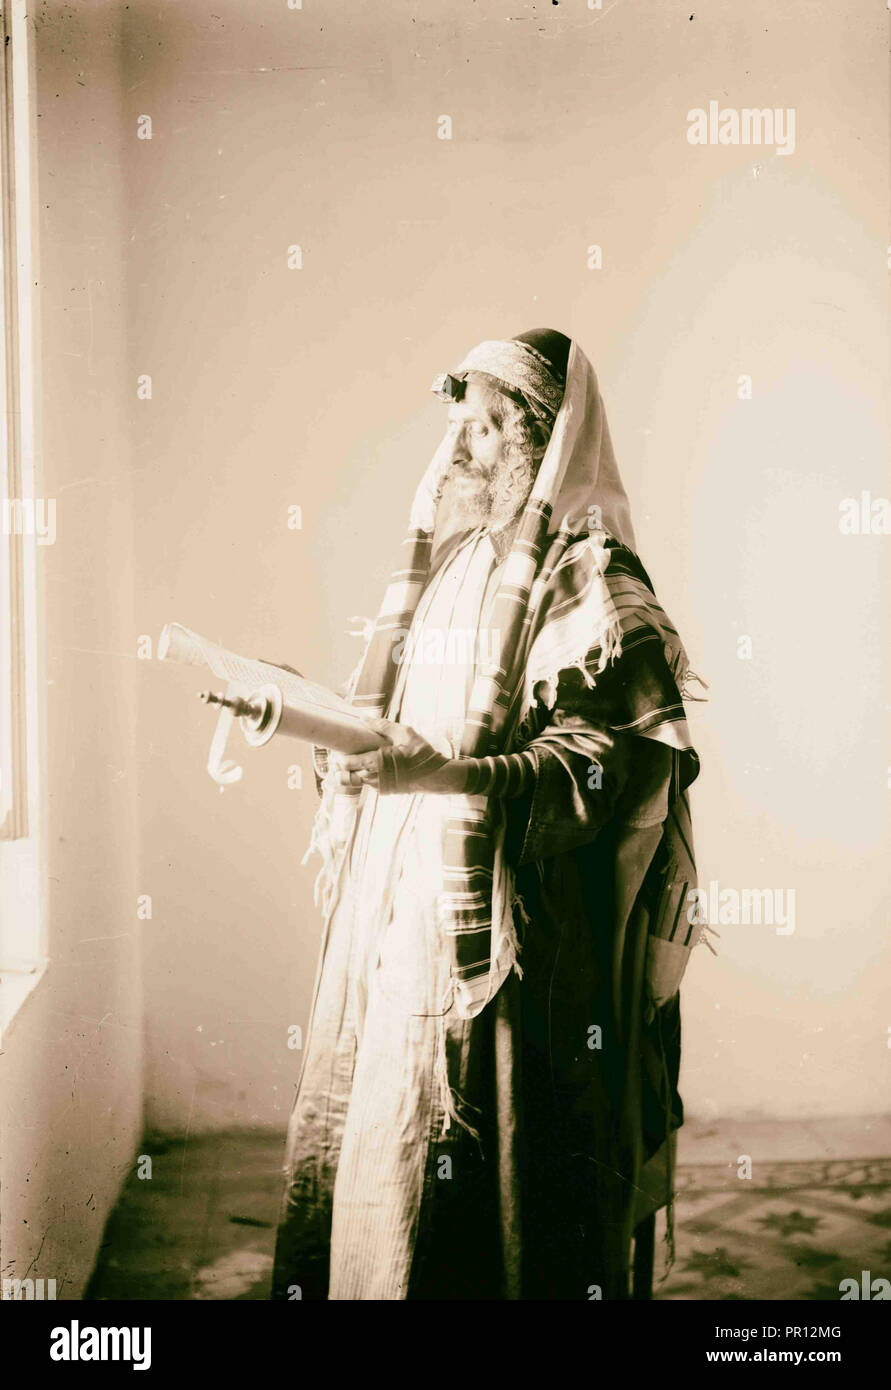 Jew arrayed for prayer. 1900, Middle East, Israel - Stock Image